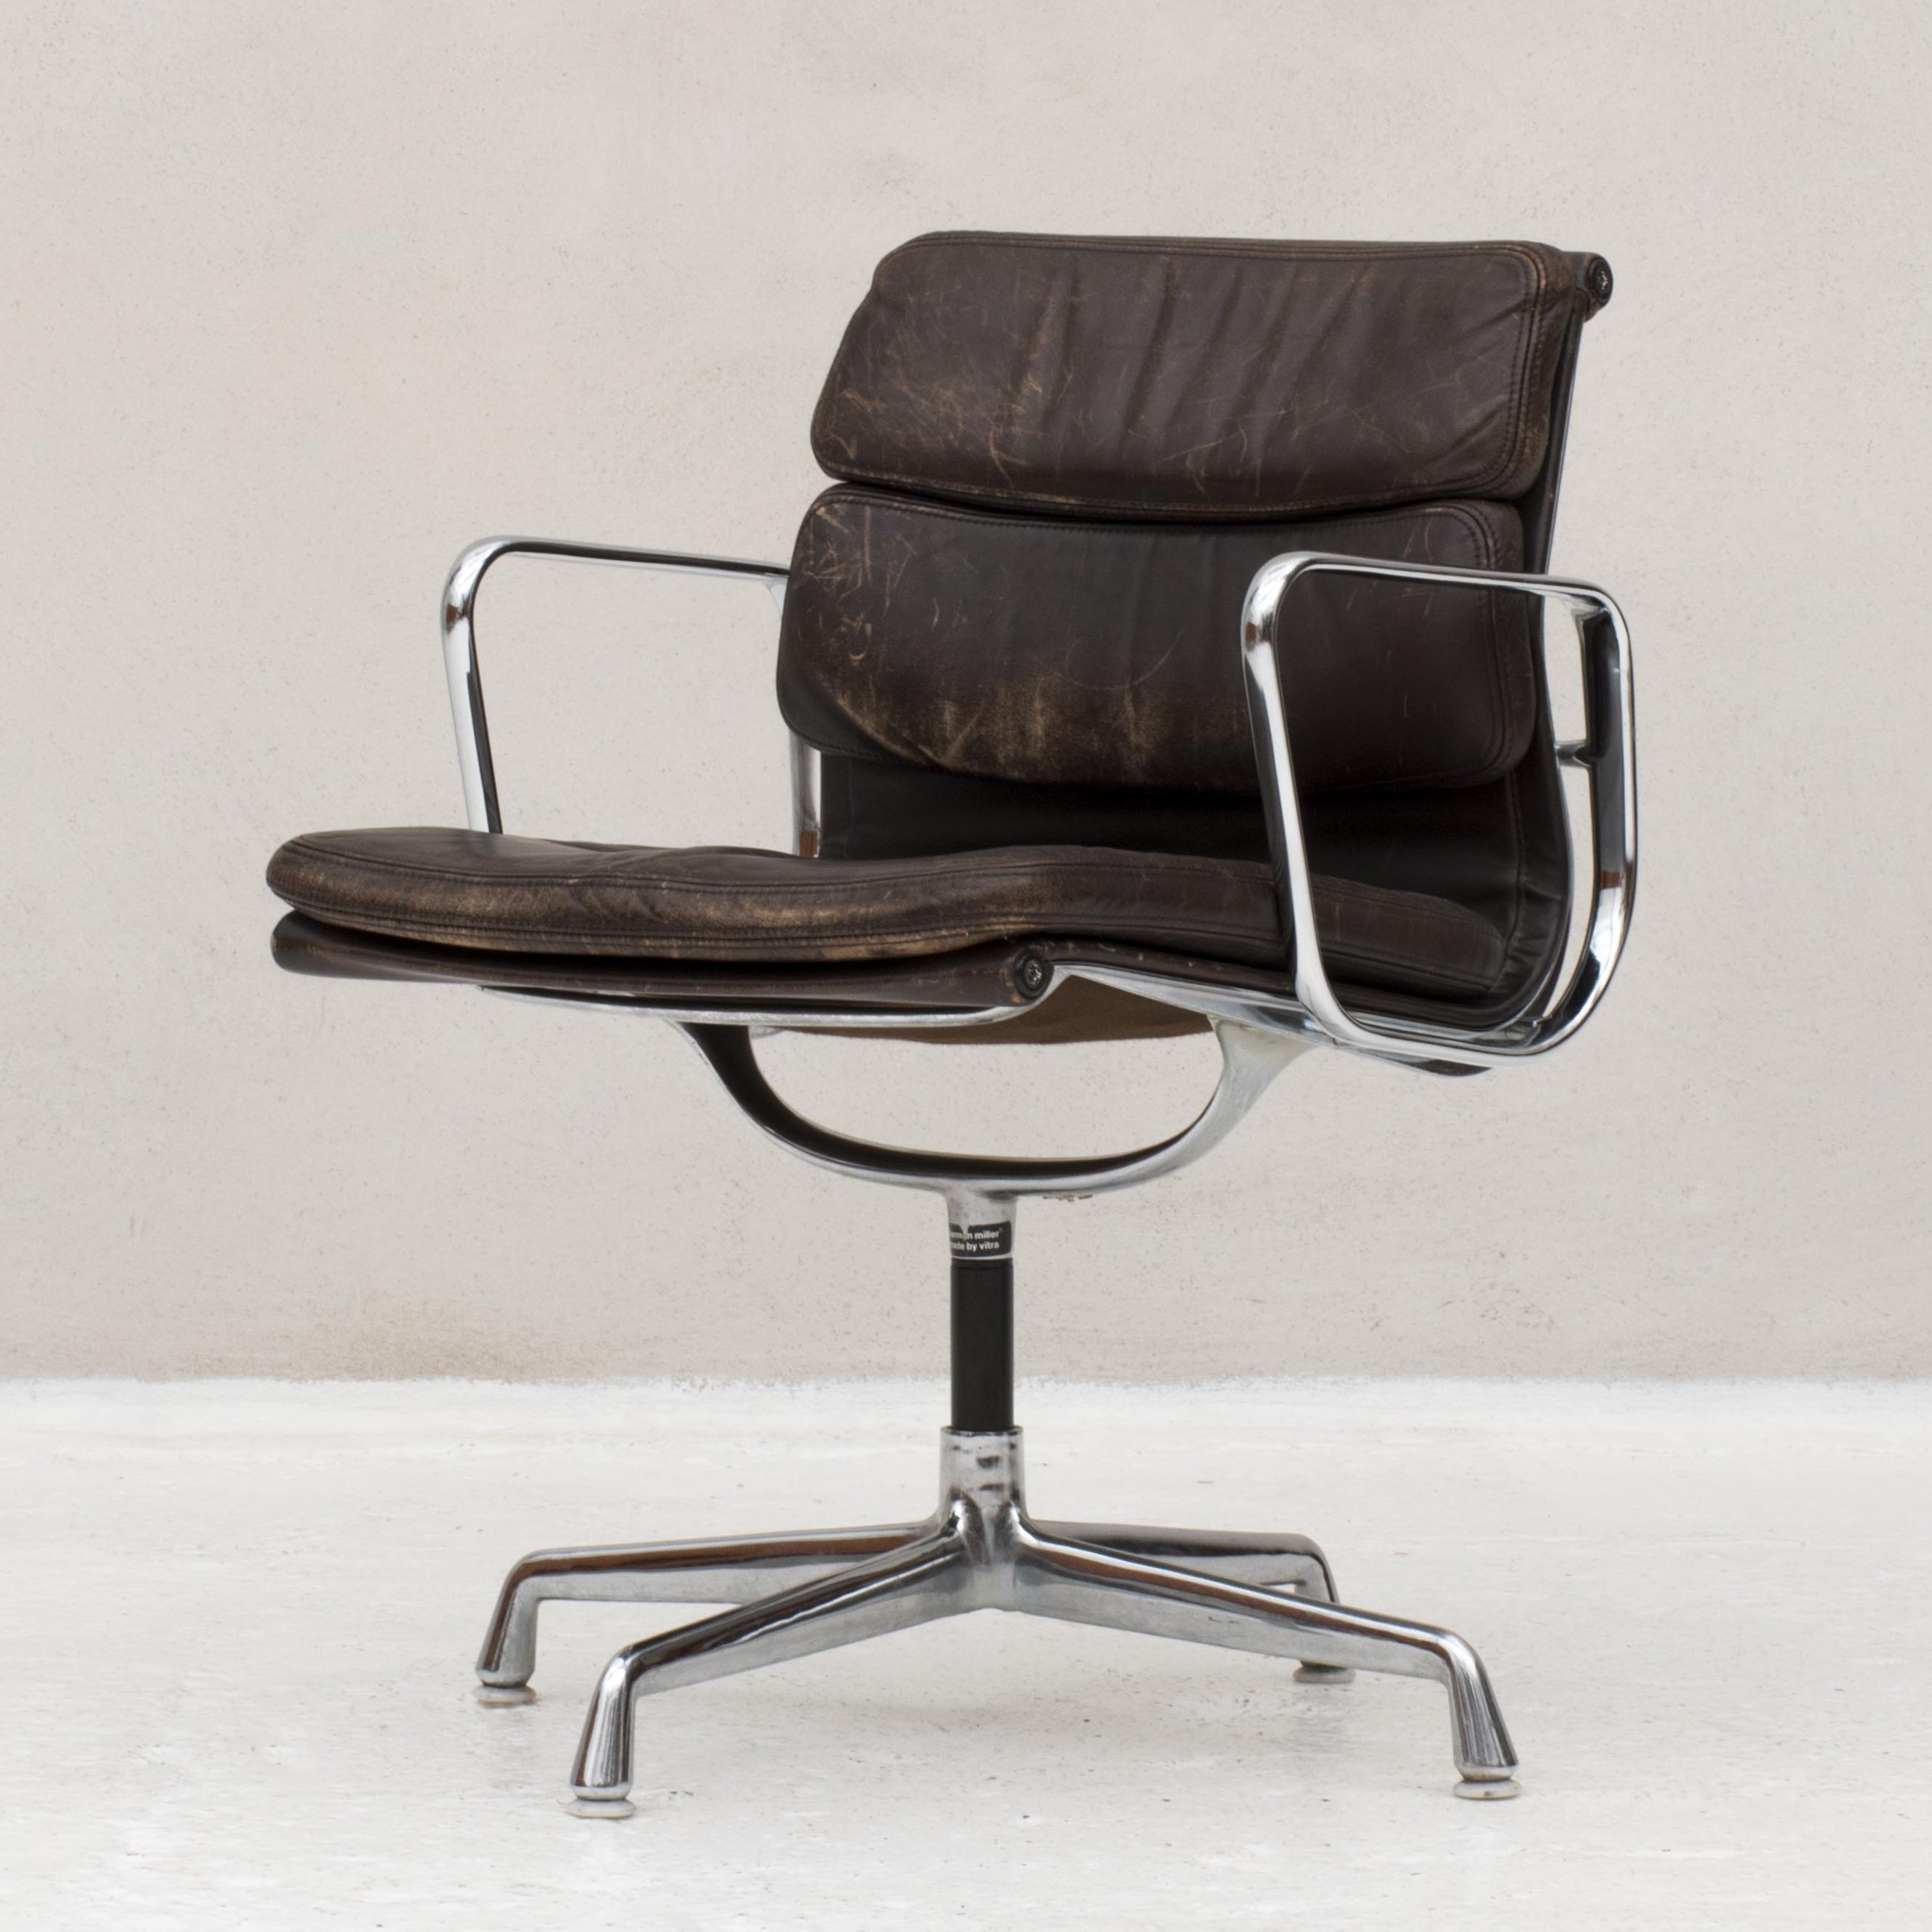 Desk Chair By Charles U0026 Ray Eames Made By Vitra For Herman Miller, 1960s